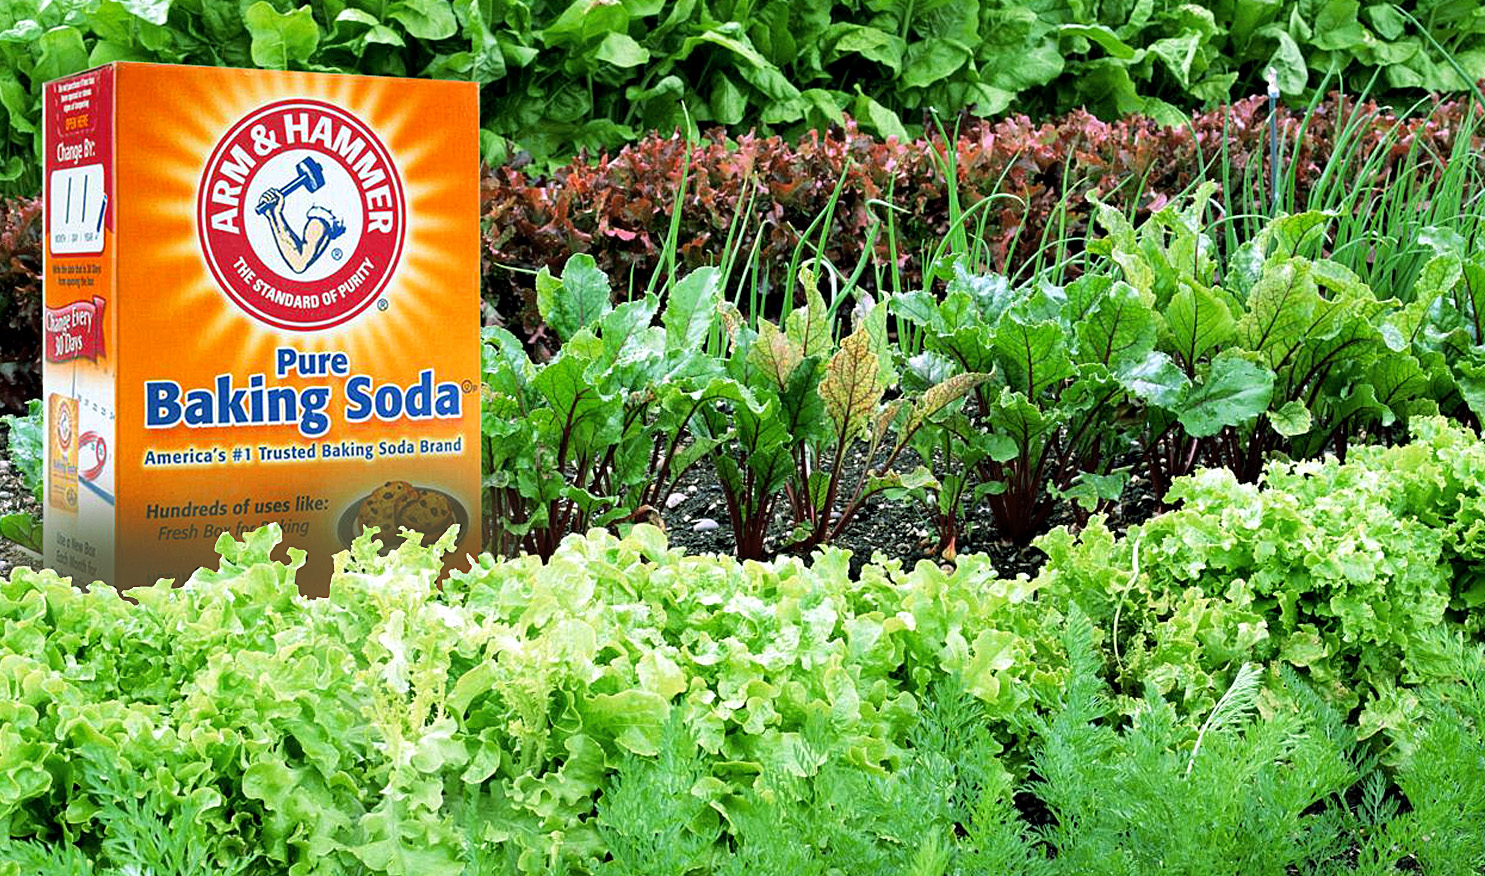 10 ways to use Baking Soda in gardens | Using Baking Soda for plants